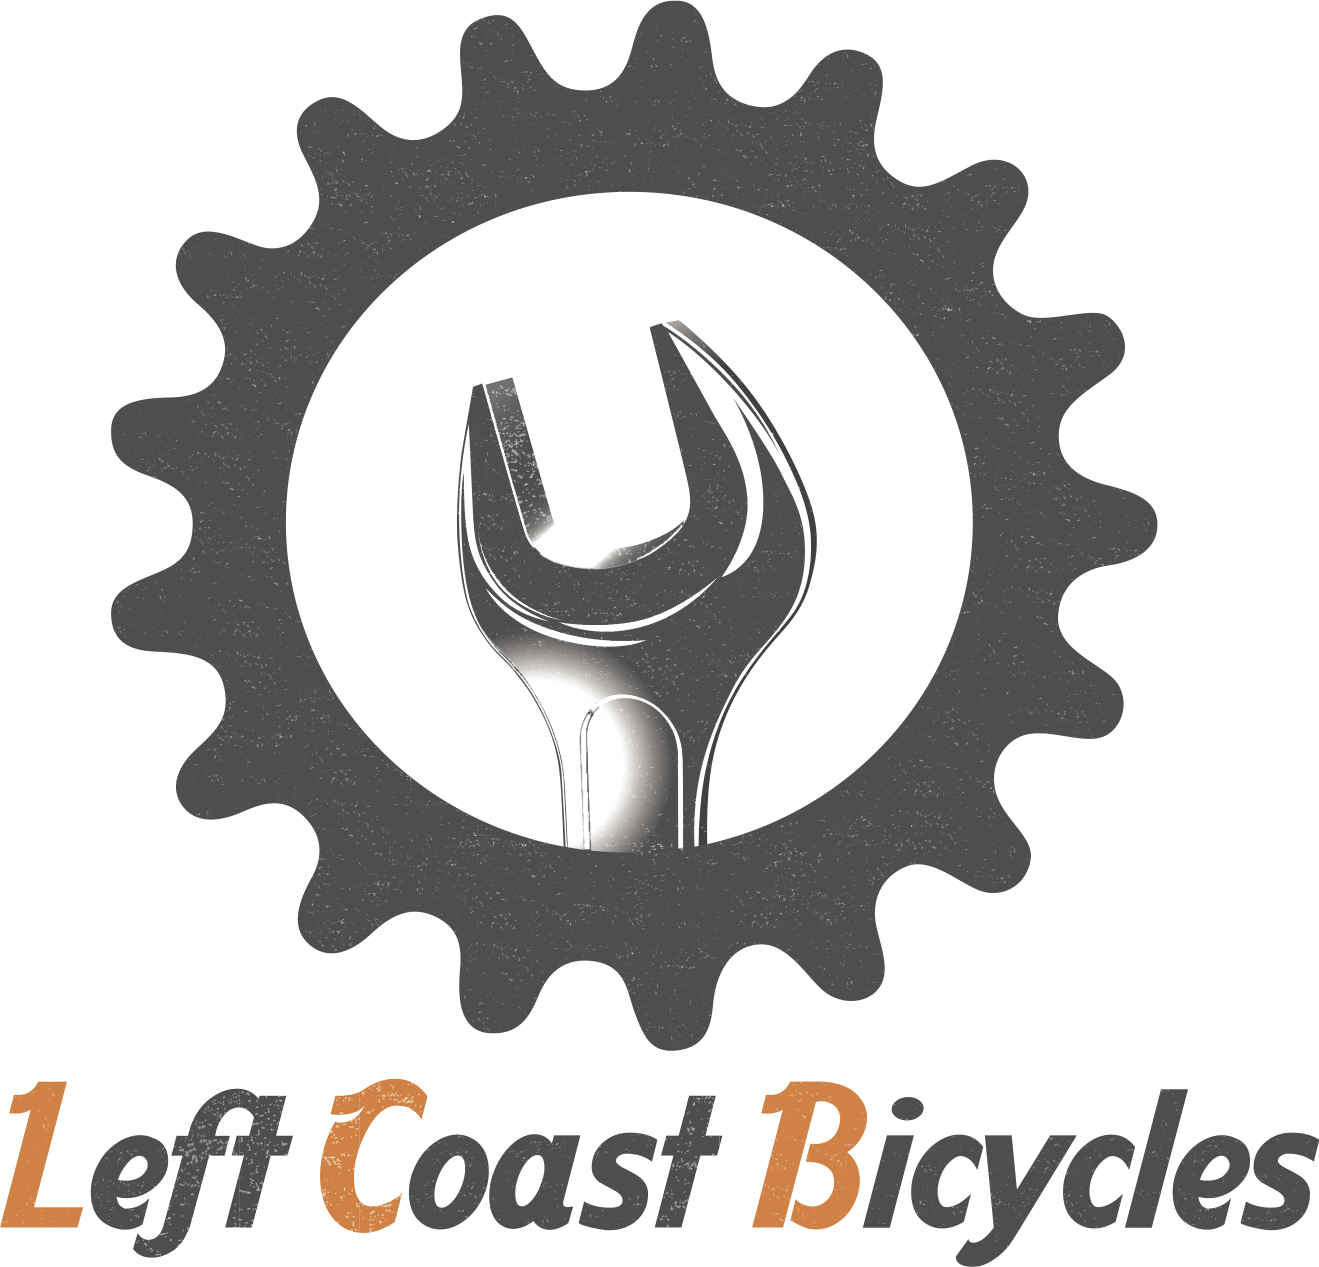 Left Coast Bicycles, Portland's mobile bike repair